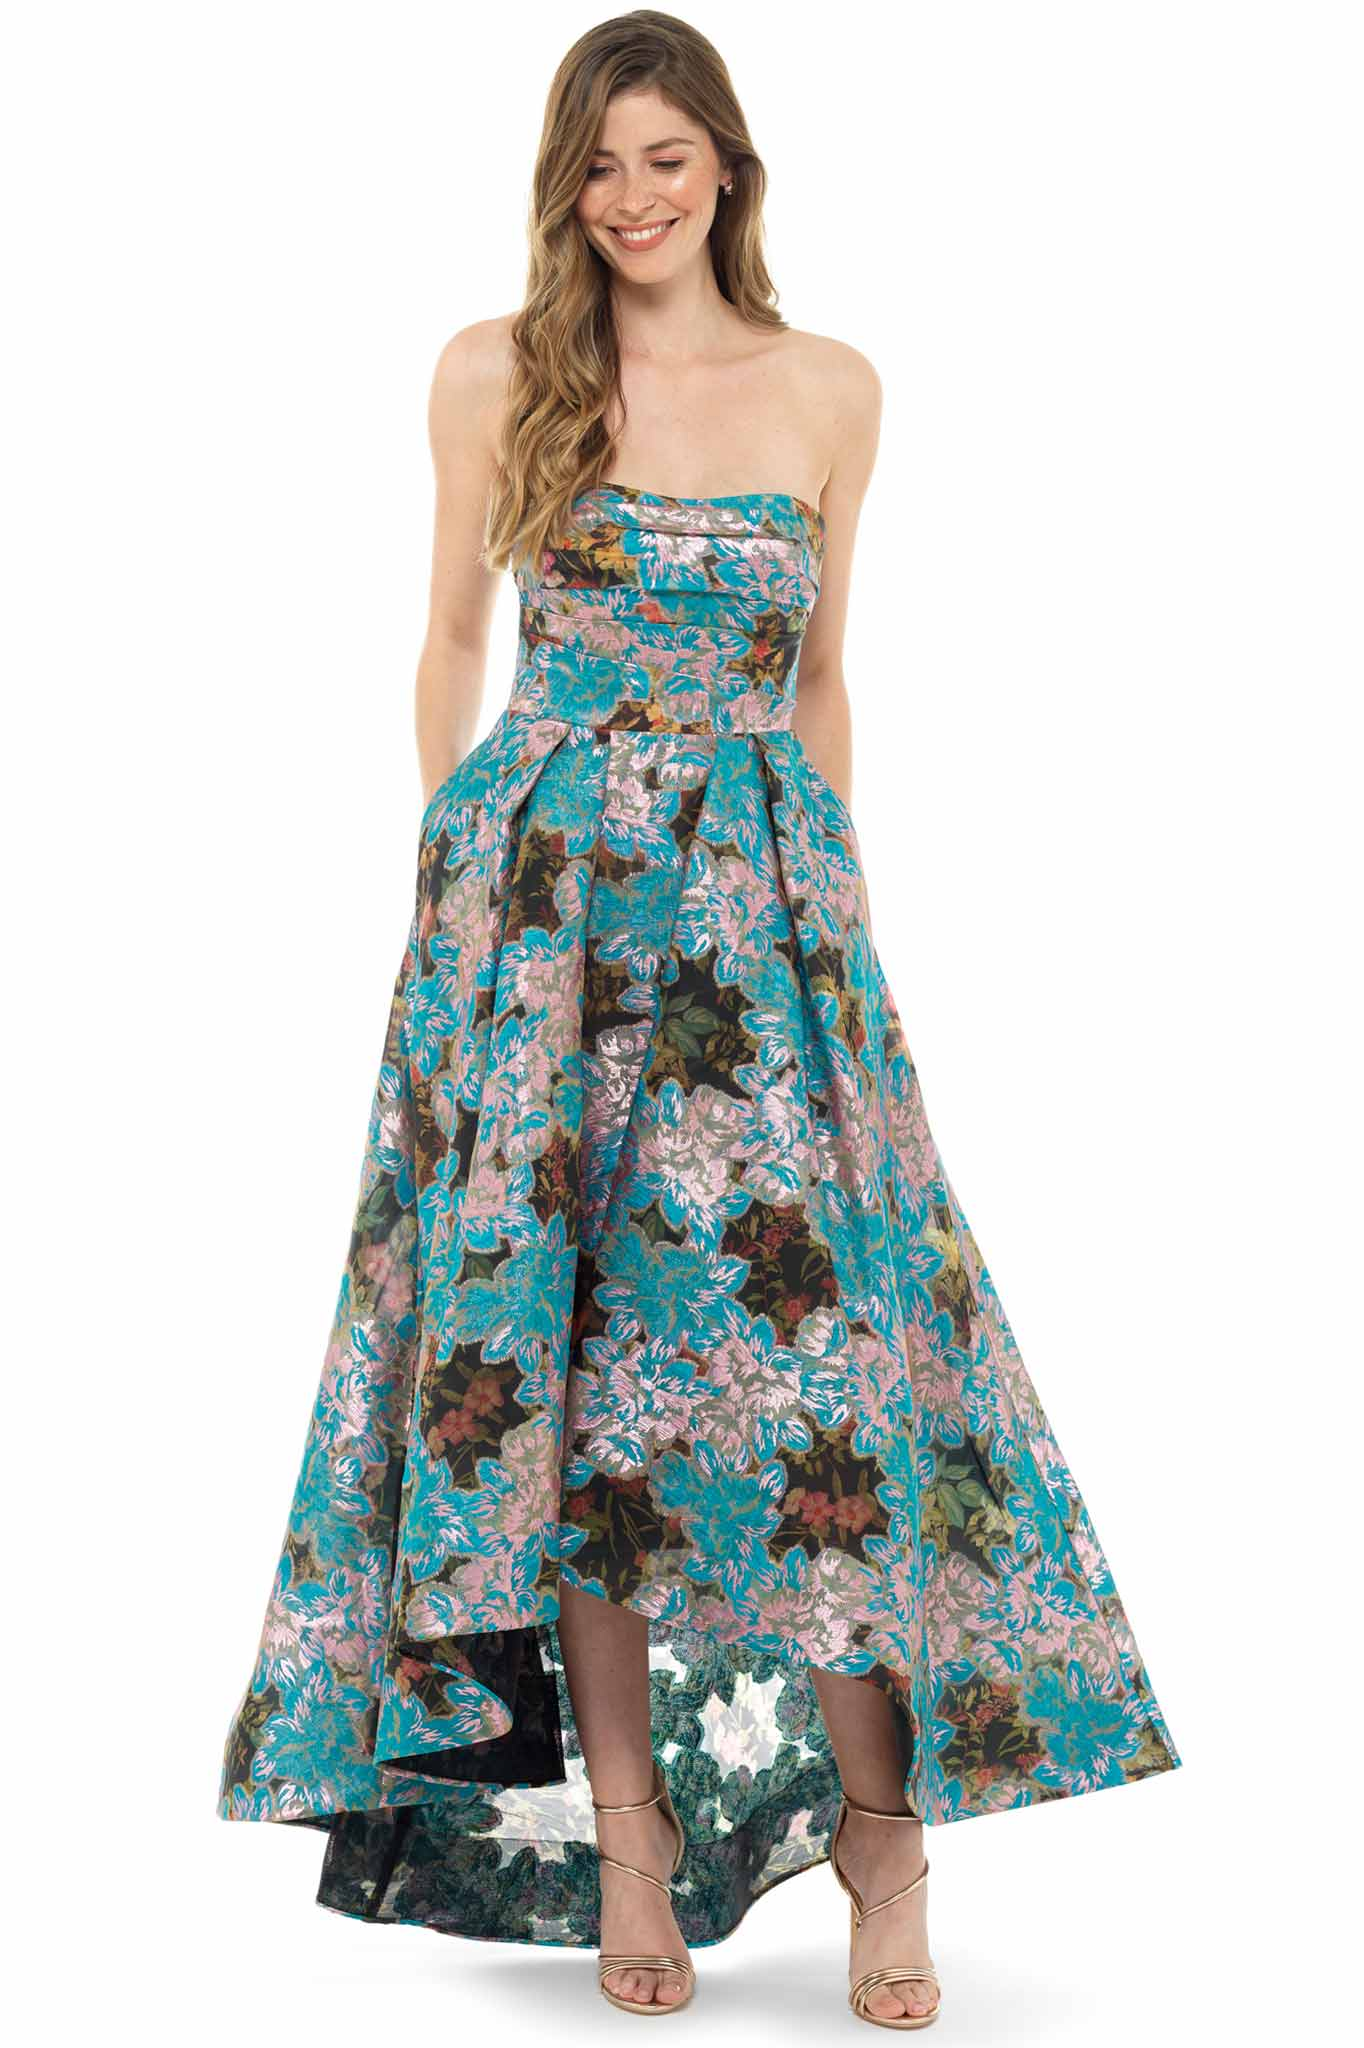 Marchesa Notte Turquoise Jacquard Gown